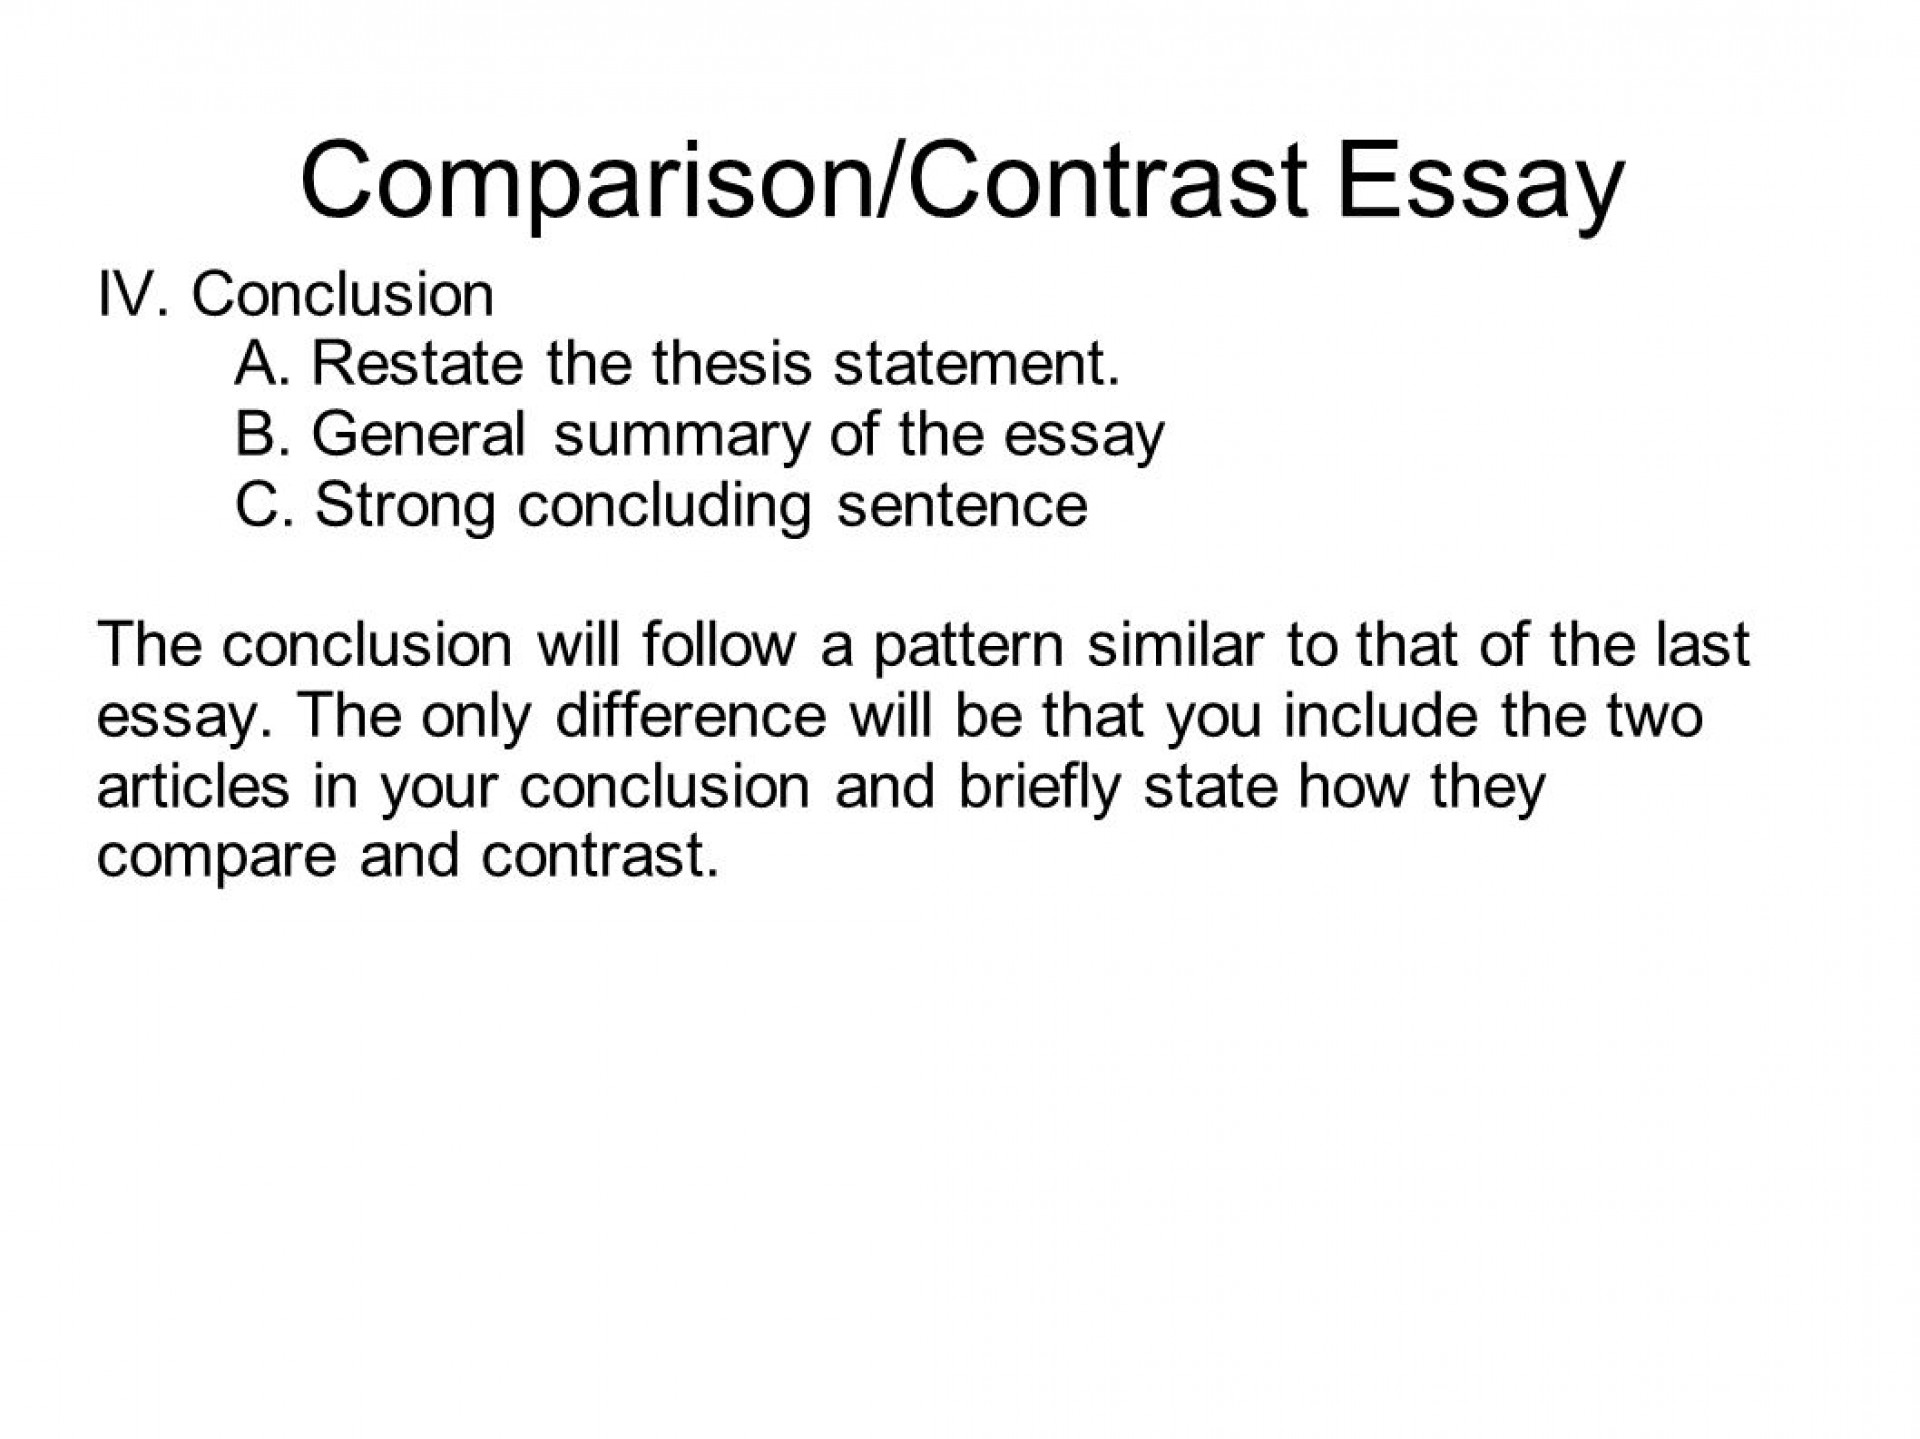 021 How To Write Compare And Contrast Essay Good Essays Conclusion Paragraph For Career Portfolios Sli Nursing Writing Senior Reflective Striking An Introduction A Block Method Sample 1920